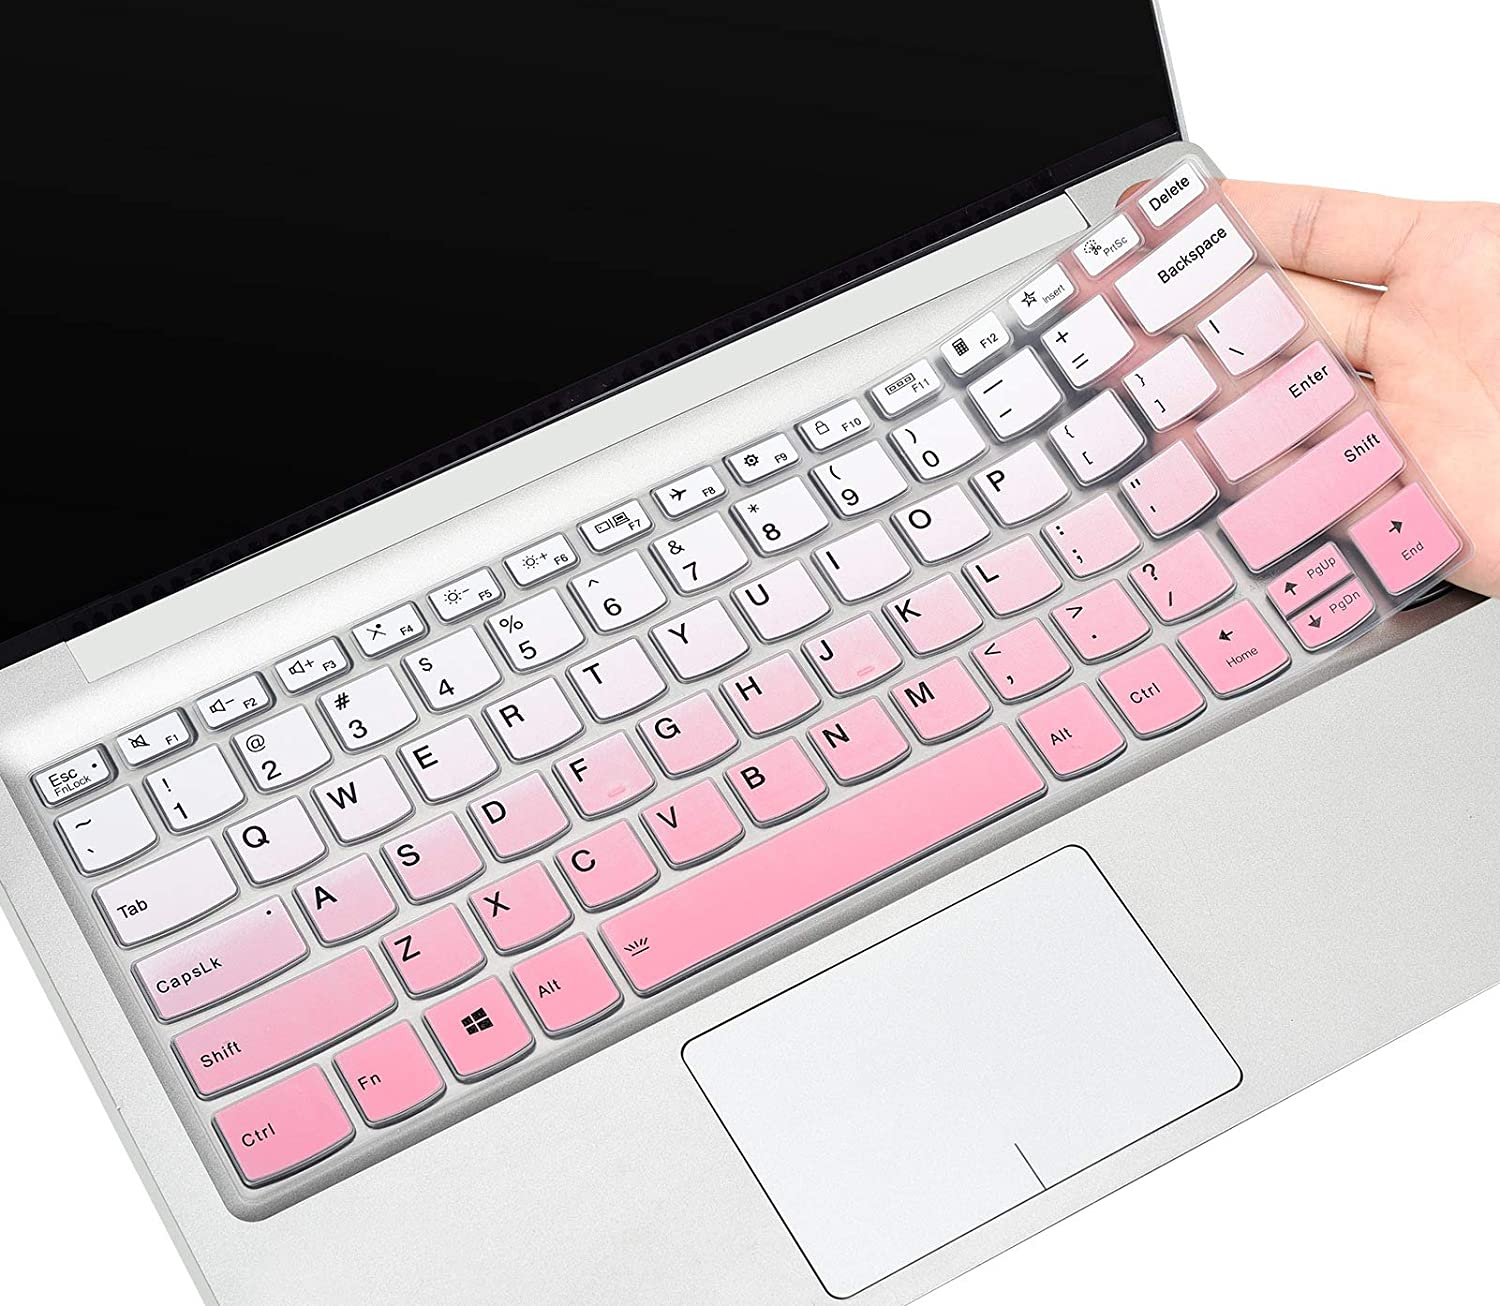 Ultra Thin Silicone Protector Skin for 2020 Lenovo Flex 5 14 CaseBuy Keyboard Cover for 2020 Lenovo Flex 5 14 2-in-1 Laptop//Idepad S540 14 inch//Idepad S540 14 inch Obmre Pink